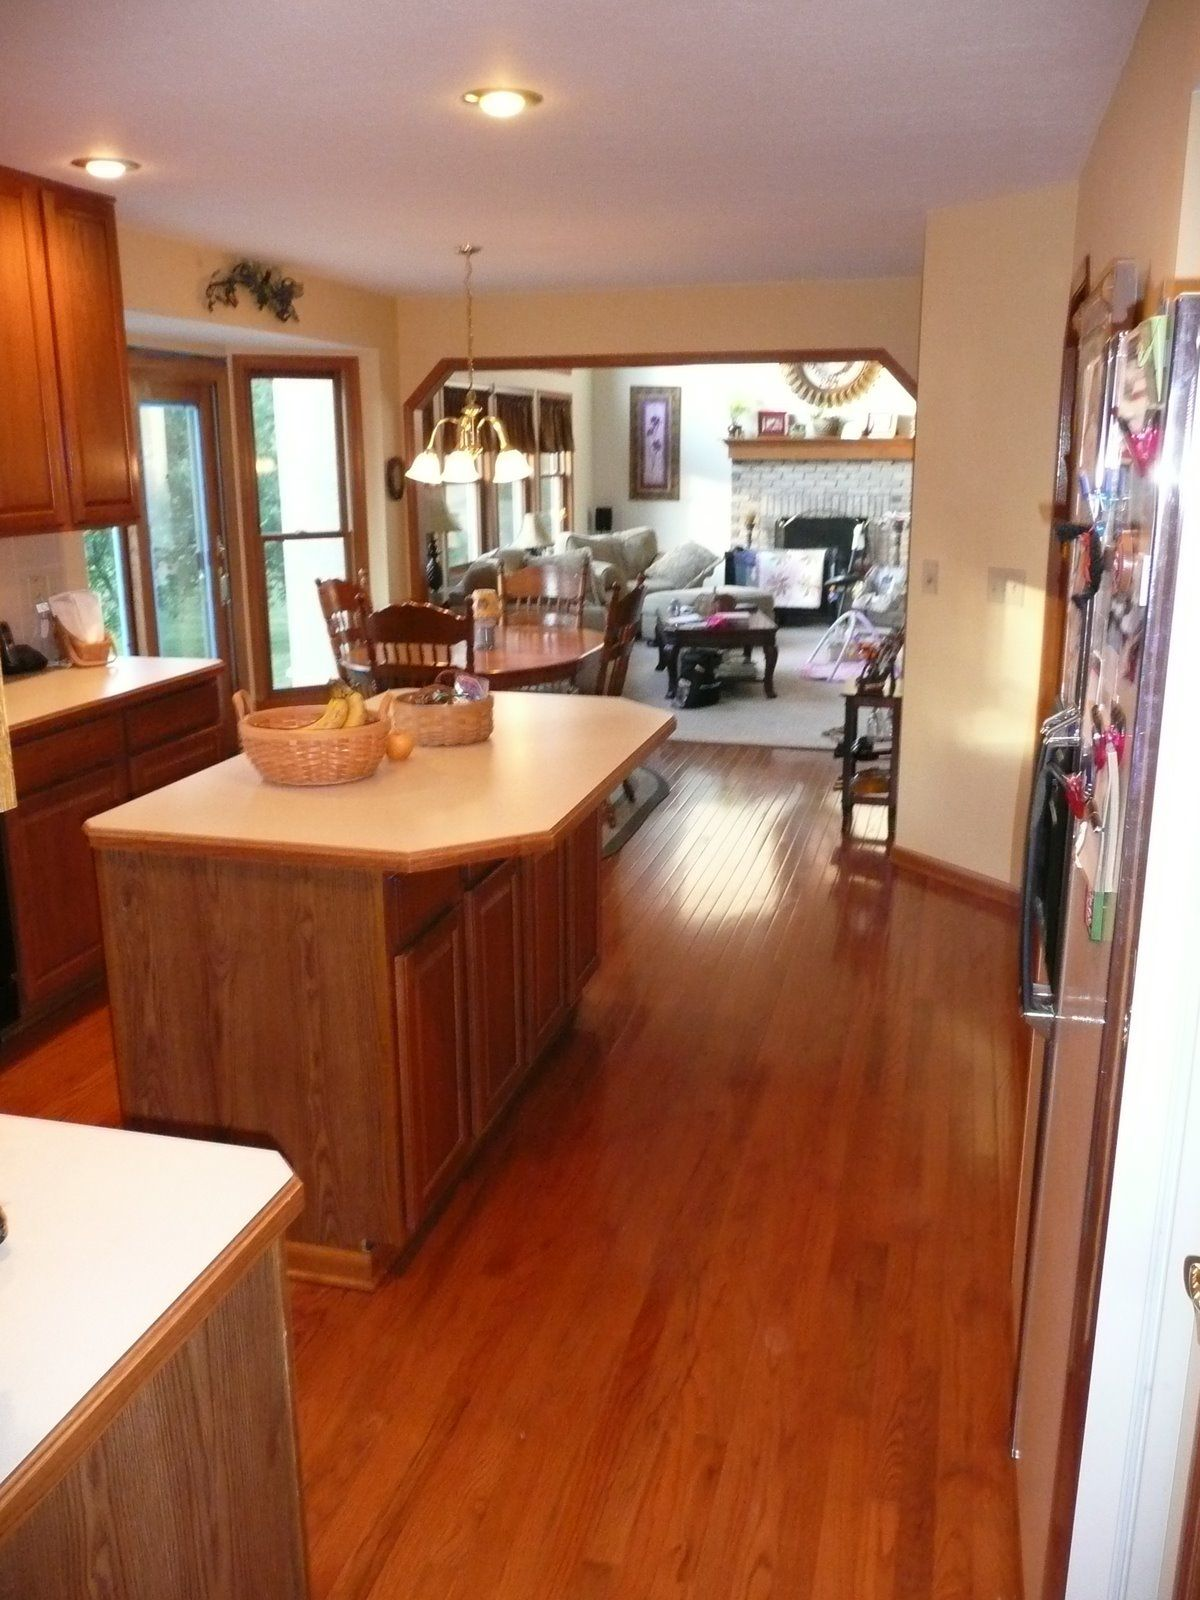 Linoleum flooring - inexpensive, versatile, and beautiful ...